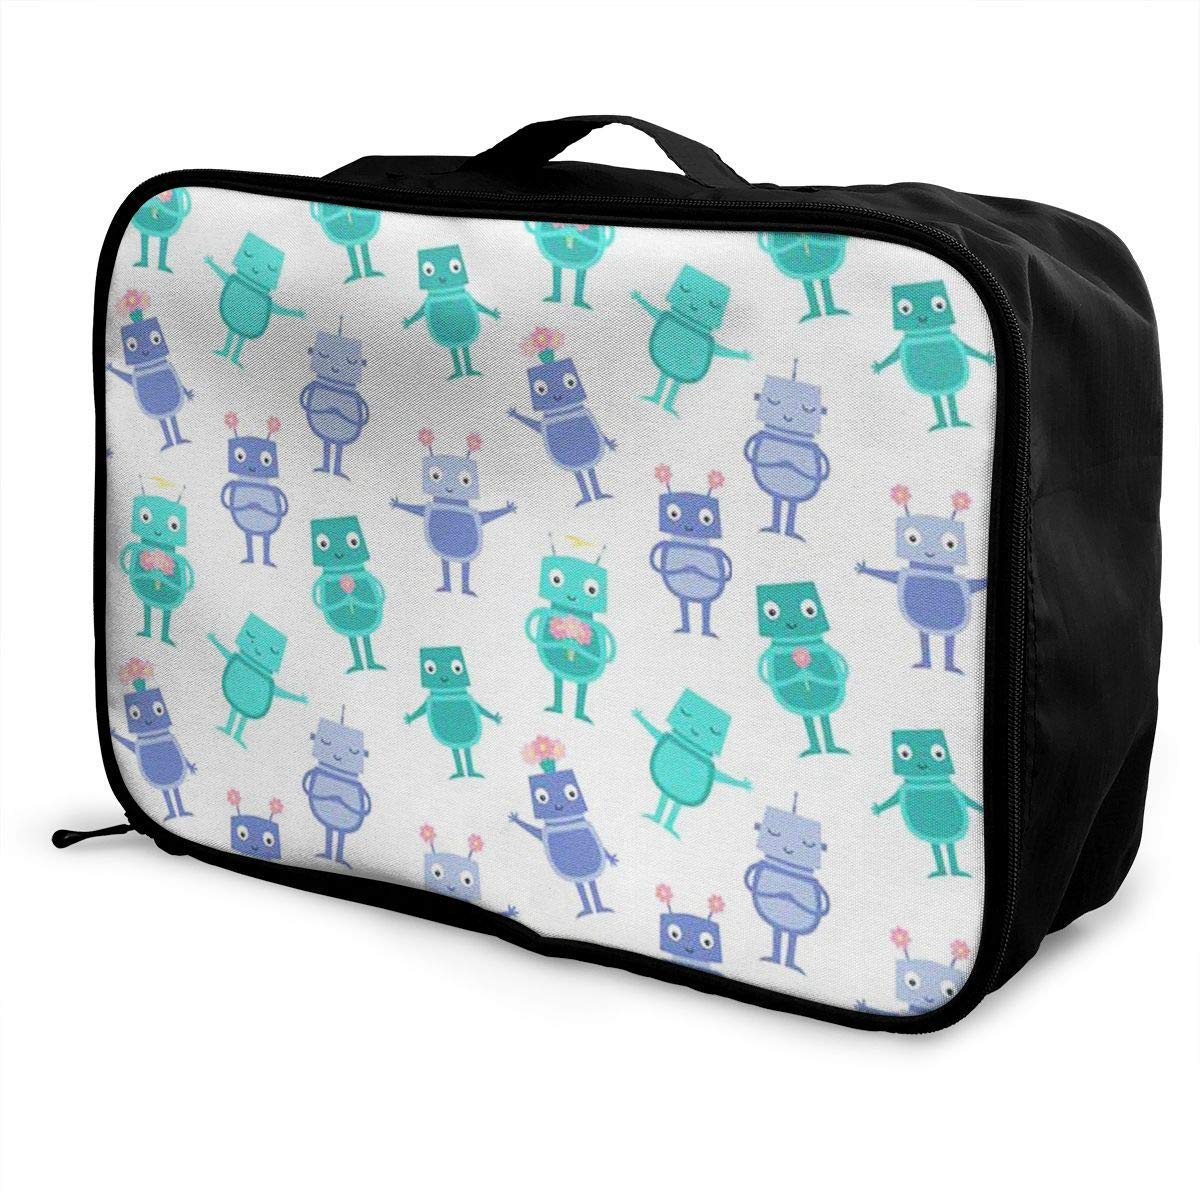 Portable Luggage Duffel Bag Robot Travel Bags Carry-on In Trolley Handle